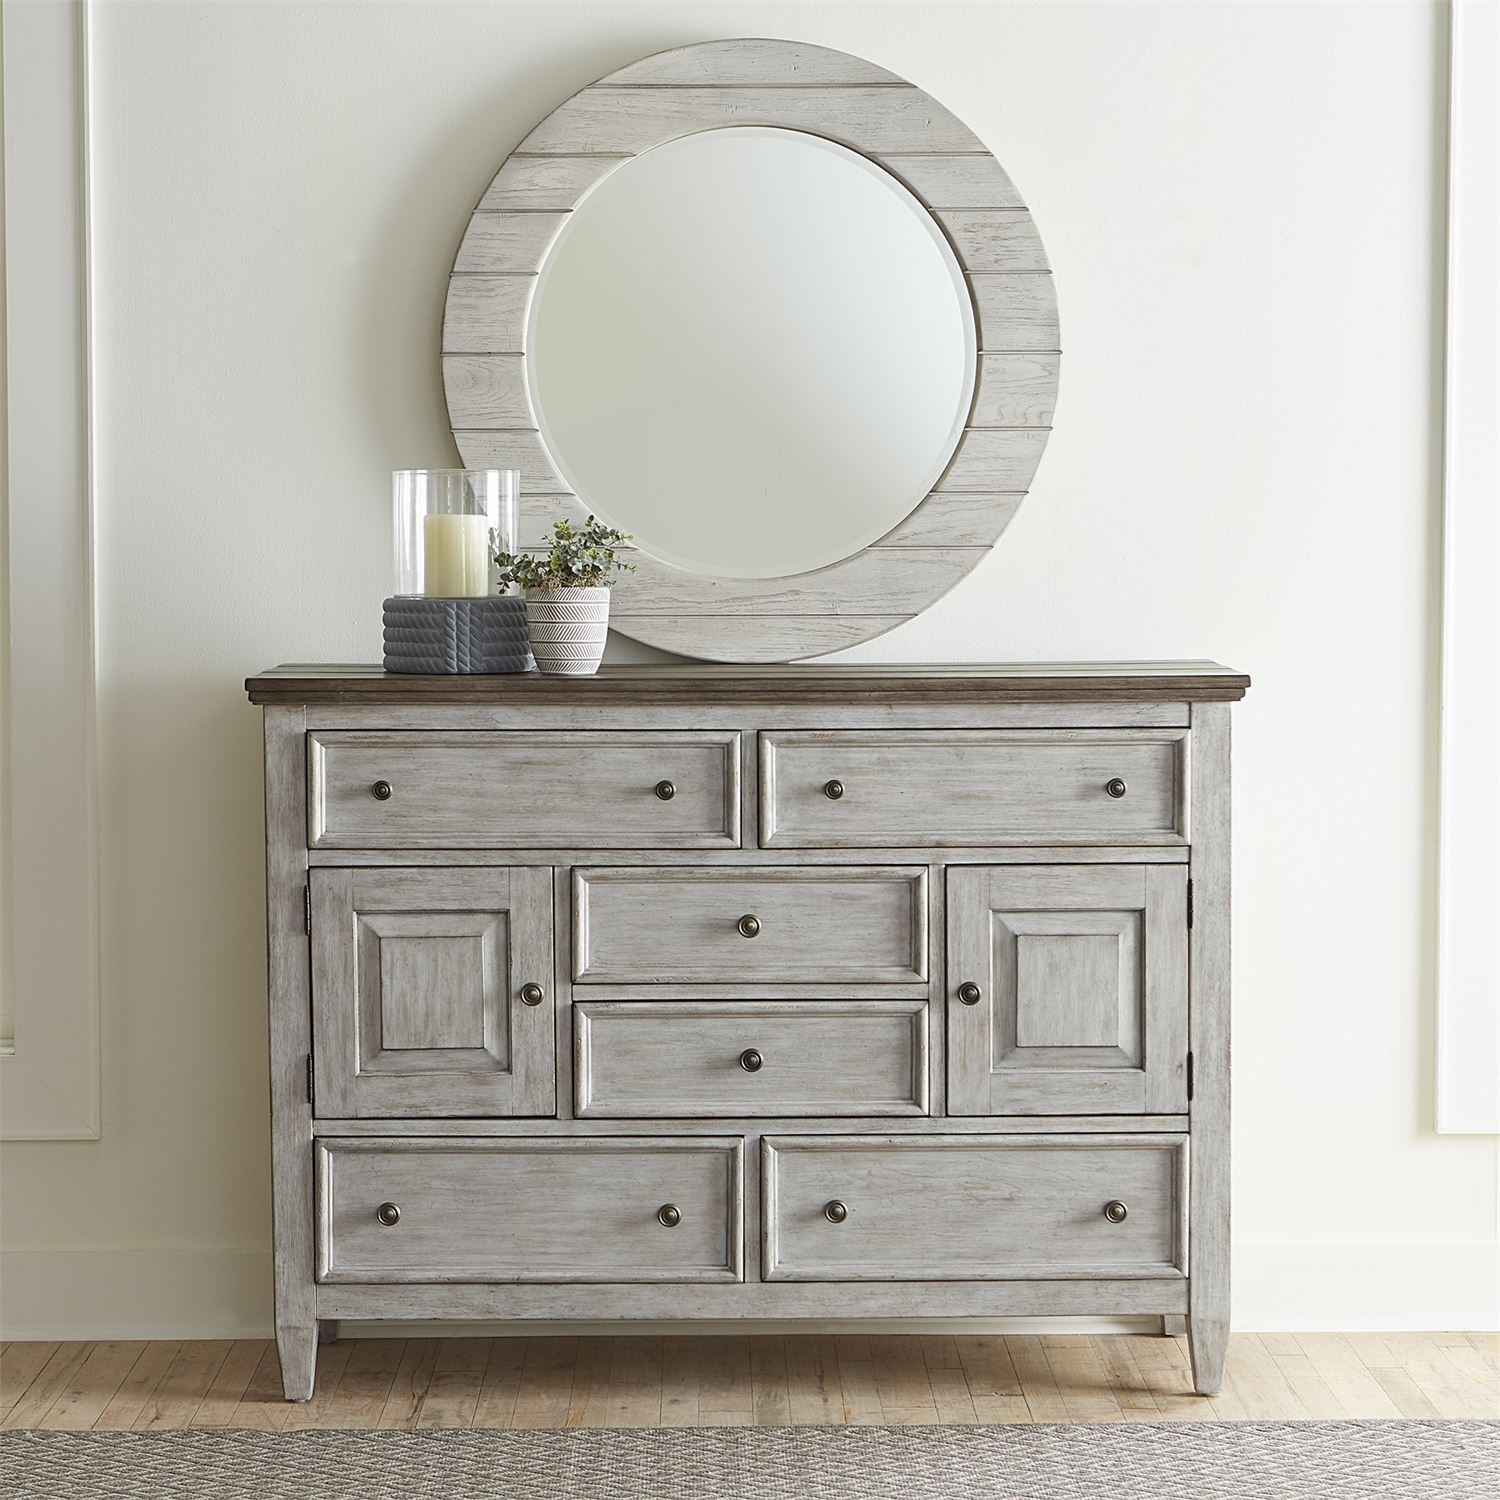 Transitional Two-Toned Dresser and Mirror Set